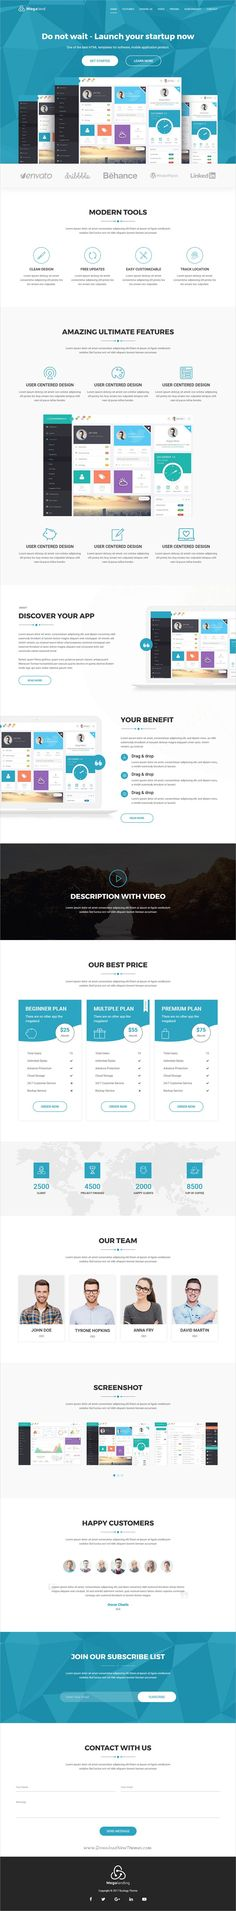 MegaLand is clean and modern design 10in1 responsive #bootstrap template for #software, #SaaS, app, Event, eBook, SEO, resume, travel, restaurant, hosting and real estate business landing page website download now..